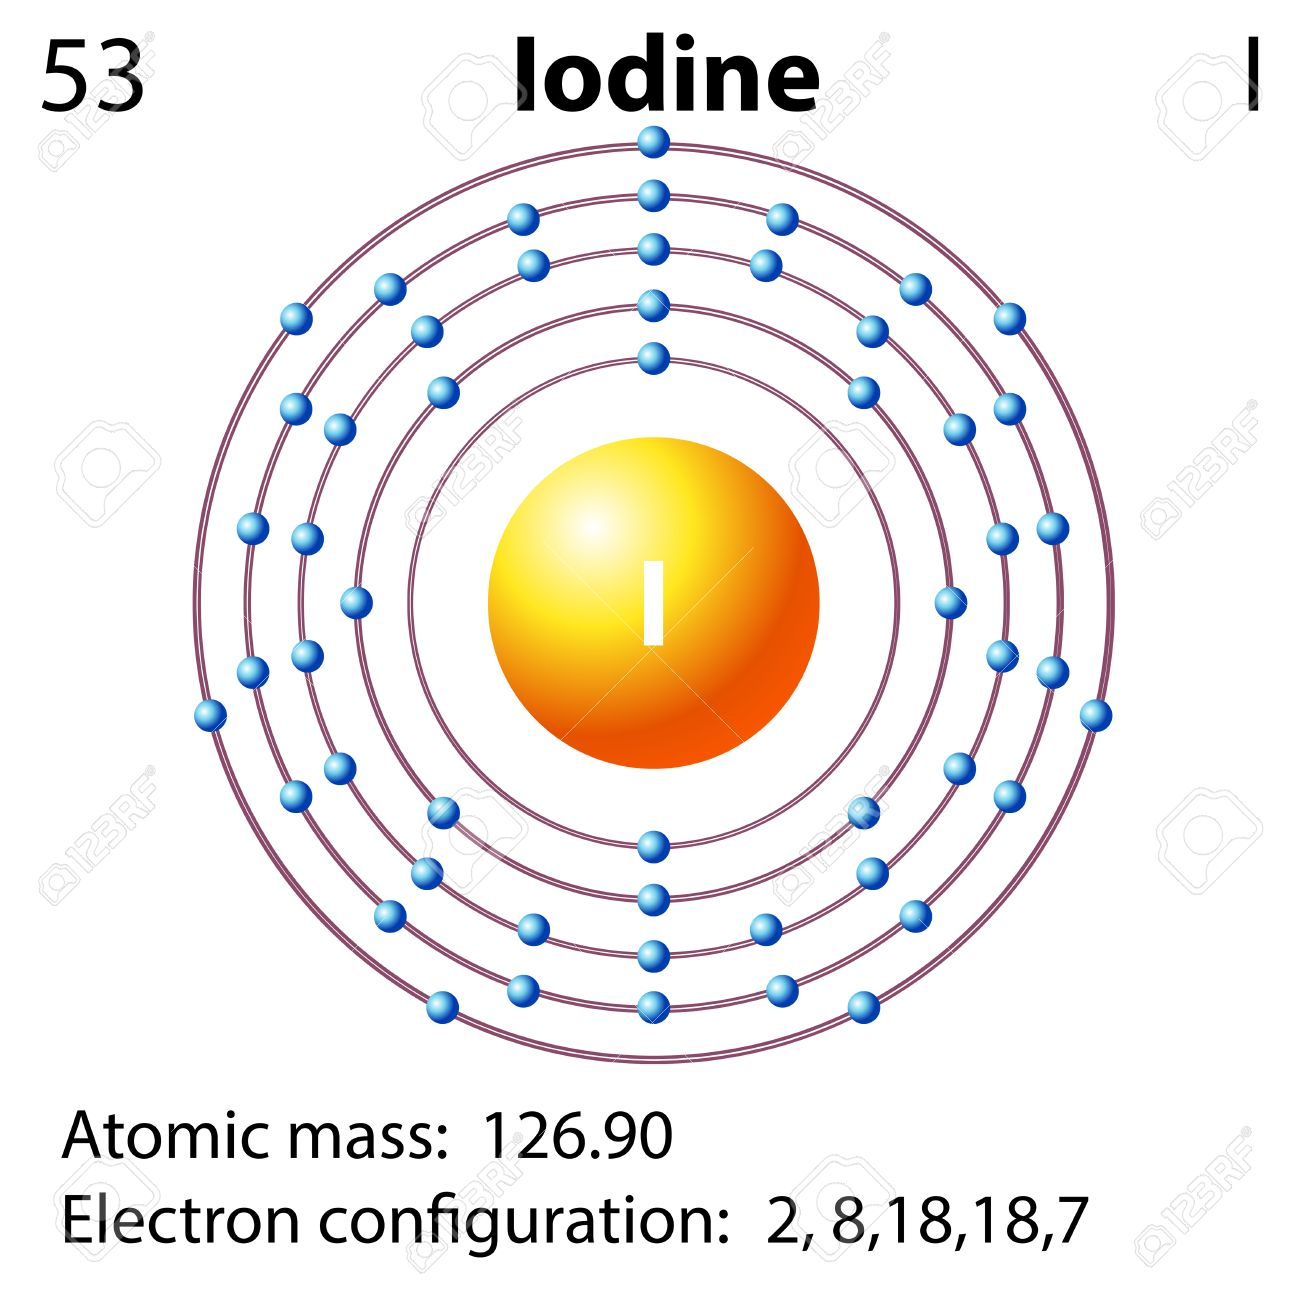 hight resolution of symbol and electron diagram for iodine illustration royalty free diagram of iodine evaporation diagram of iodine